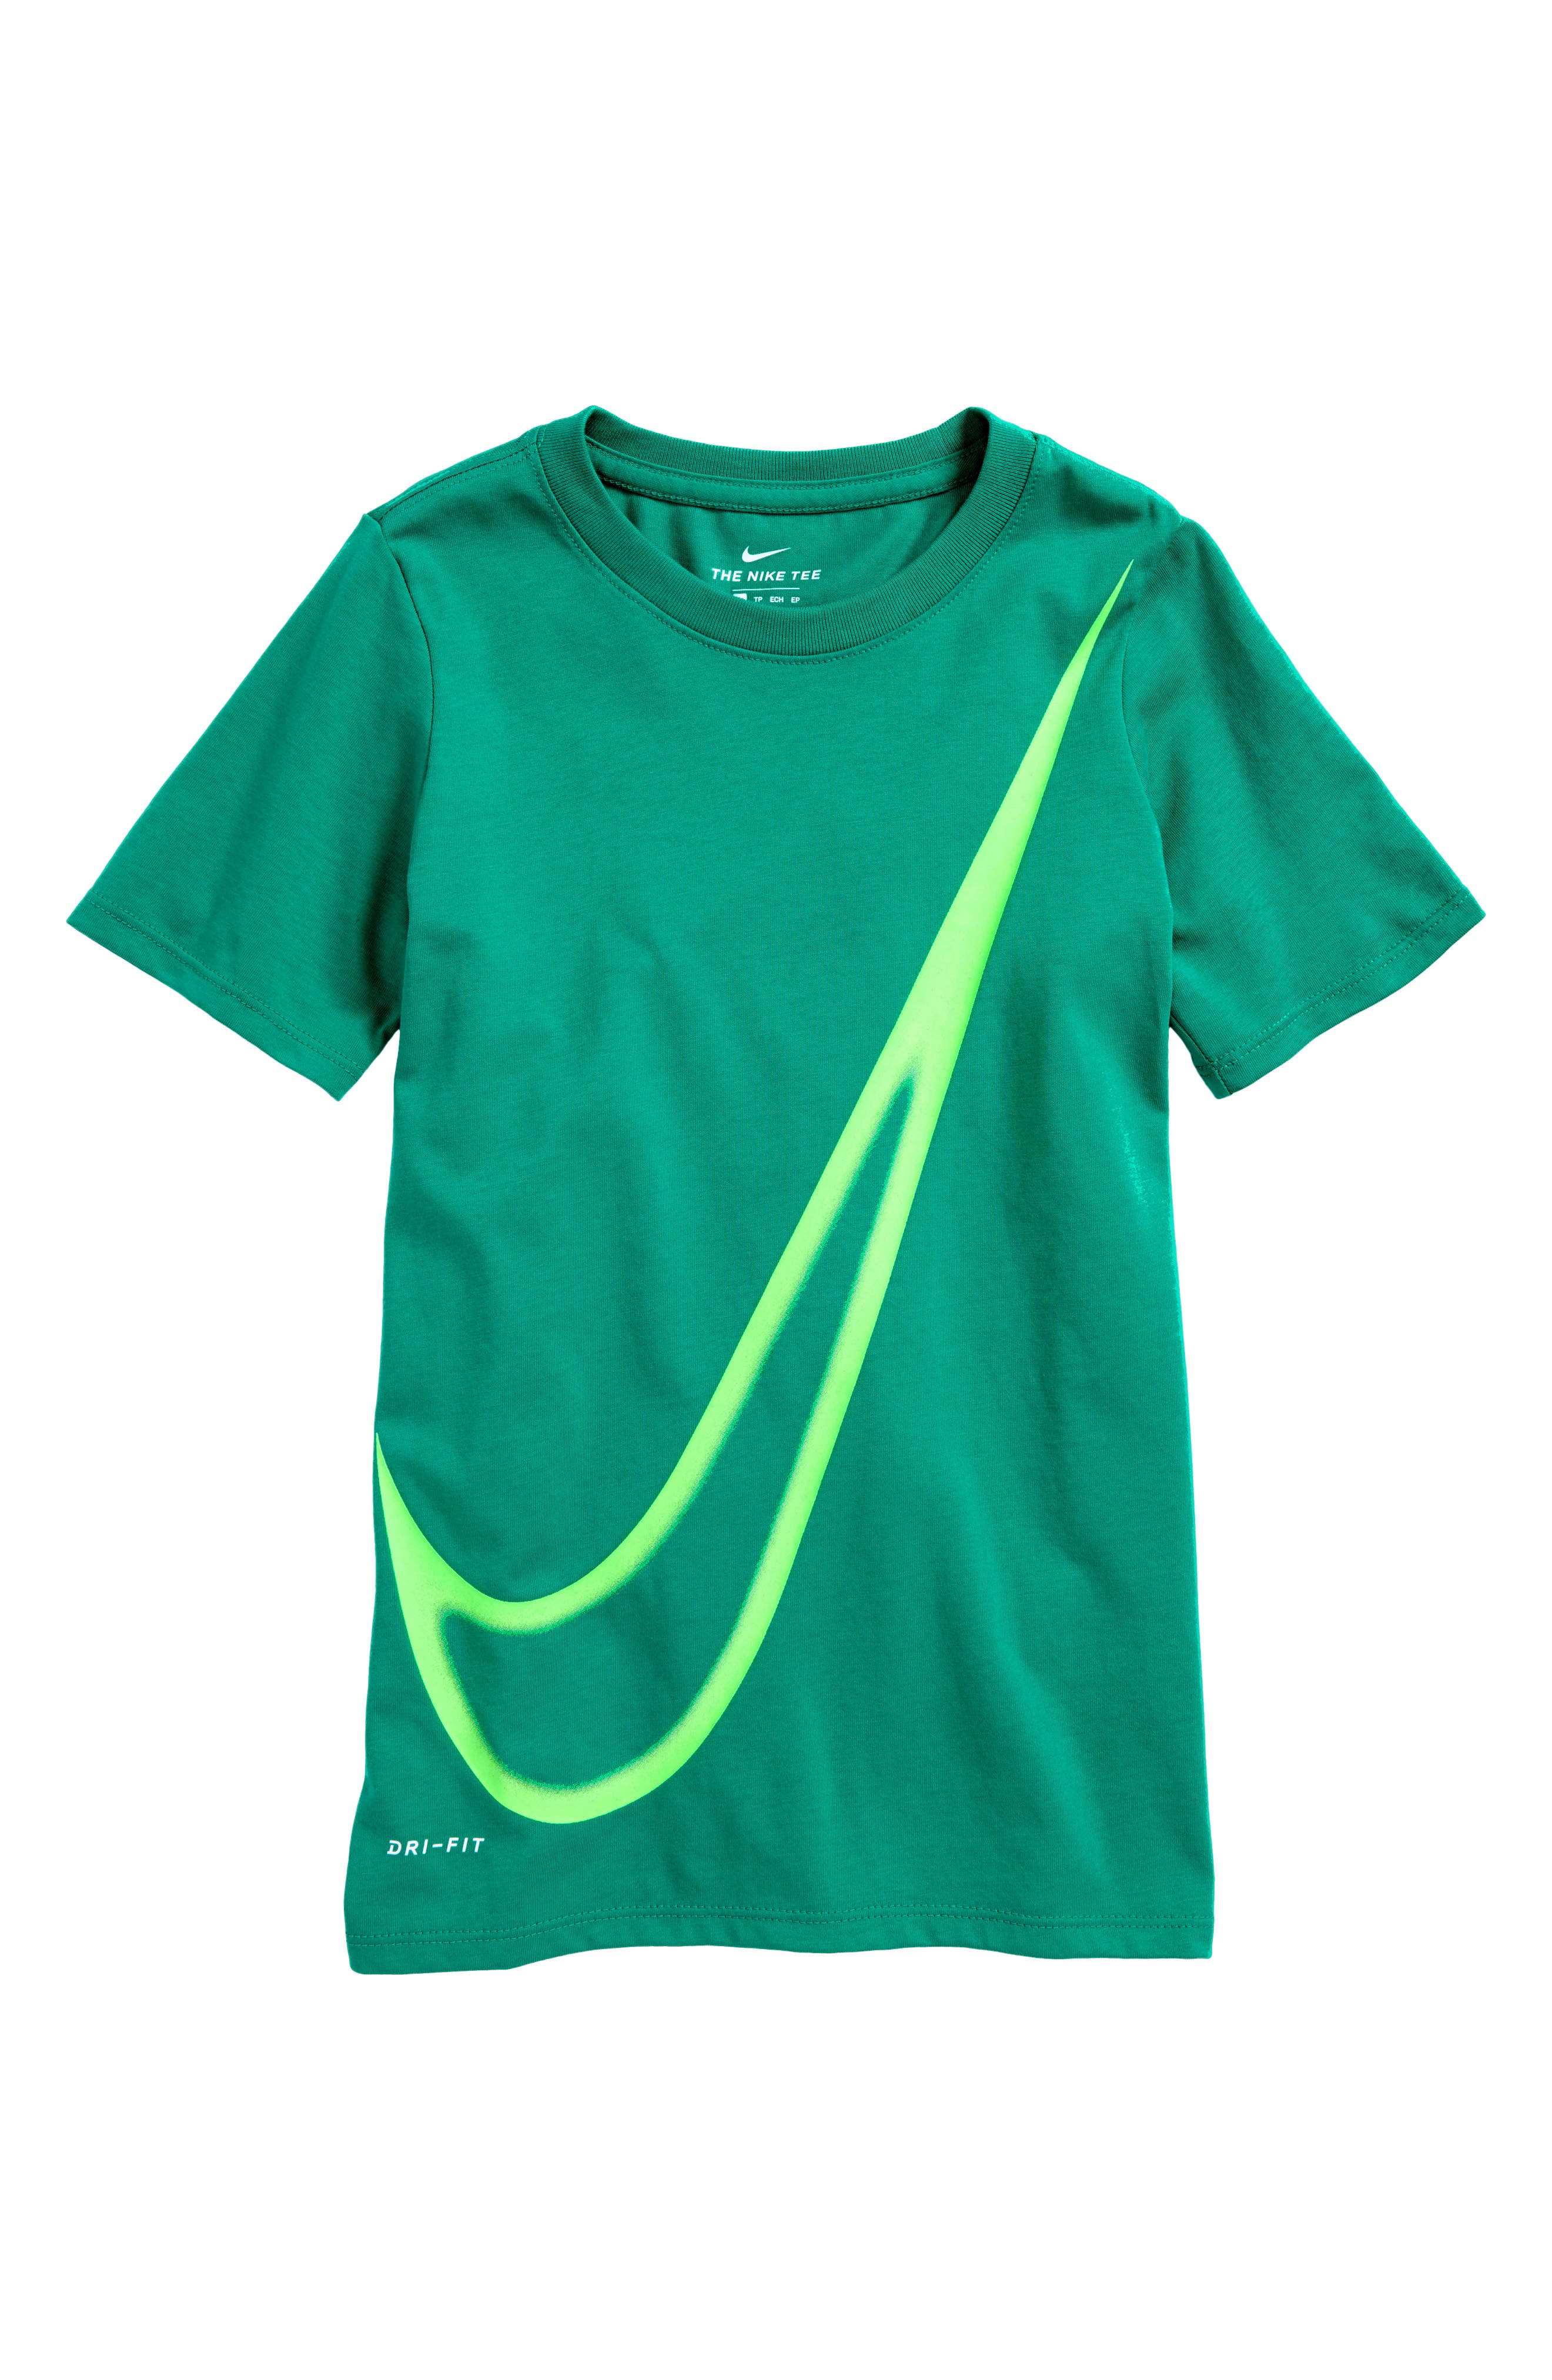 Alternate Image 1 Selected - Nike Dry Big Swoosh Graphic T-Shirt (Little Boys & Big Boys)